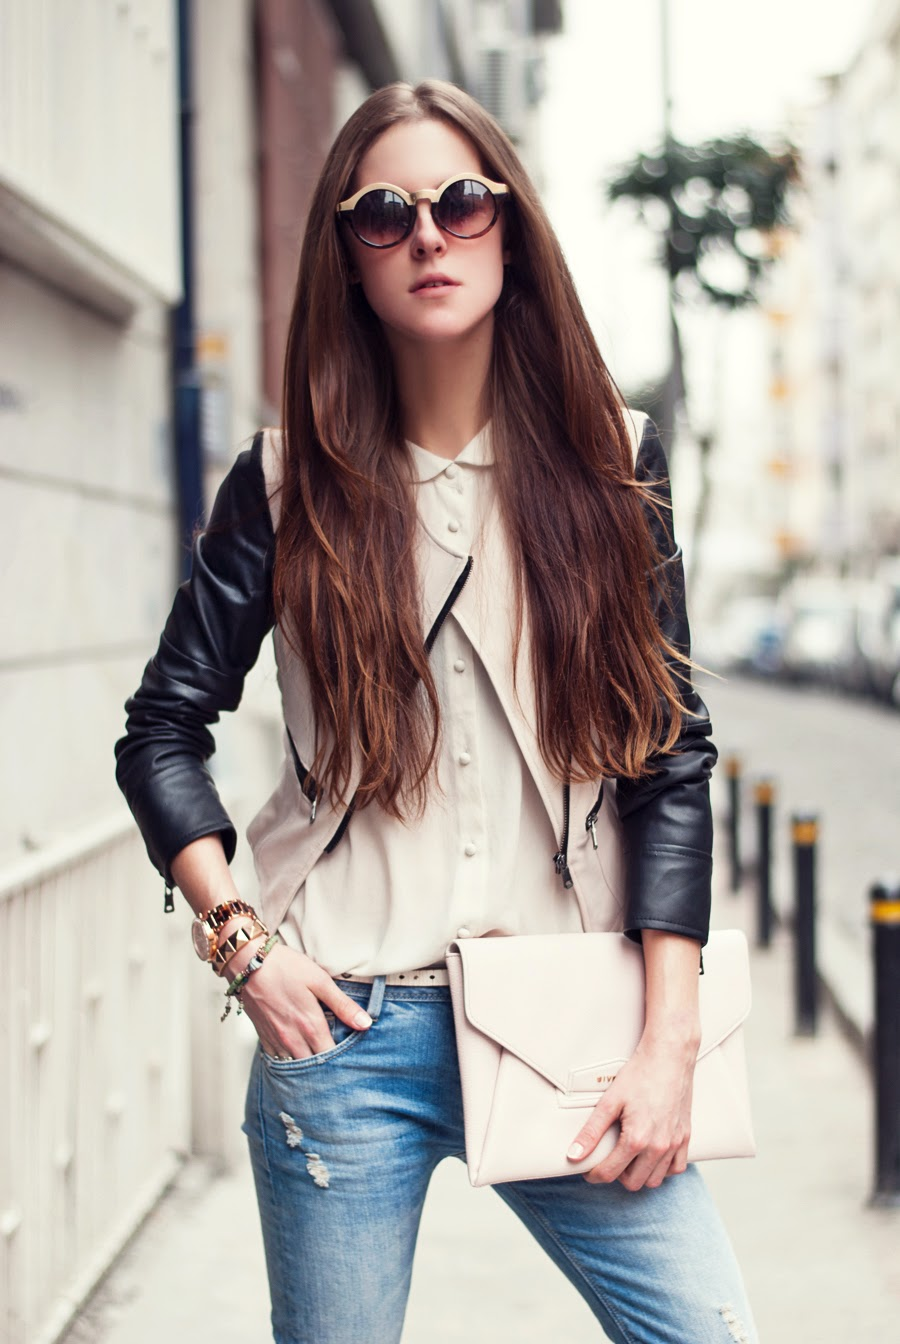 Streetstyle istanbul, fashion blogger 2014, russian blogger , leather sleeves jacket outfit, long hair, round glasses, spring trends 2014, street style details, neon rock katerina k